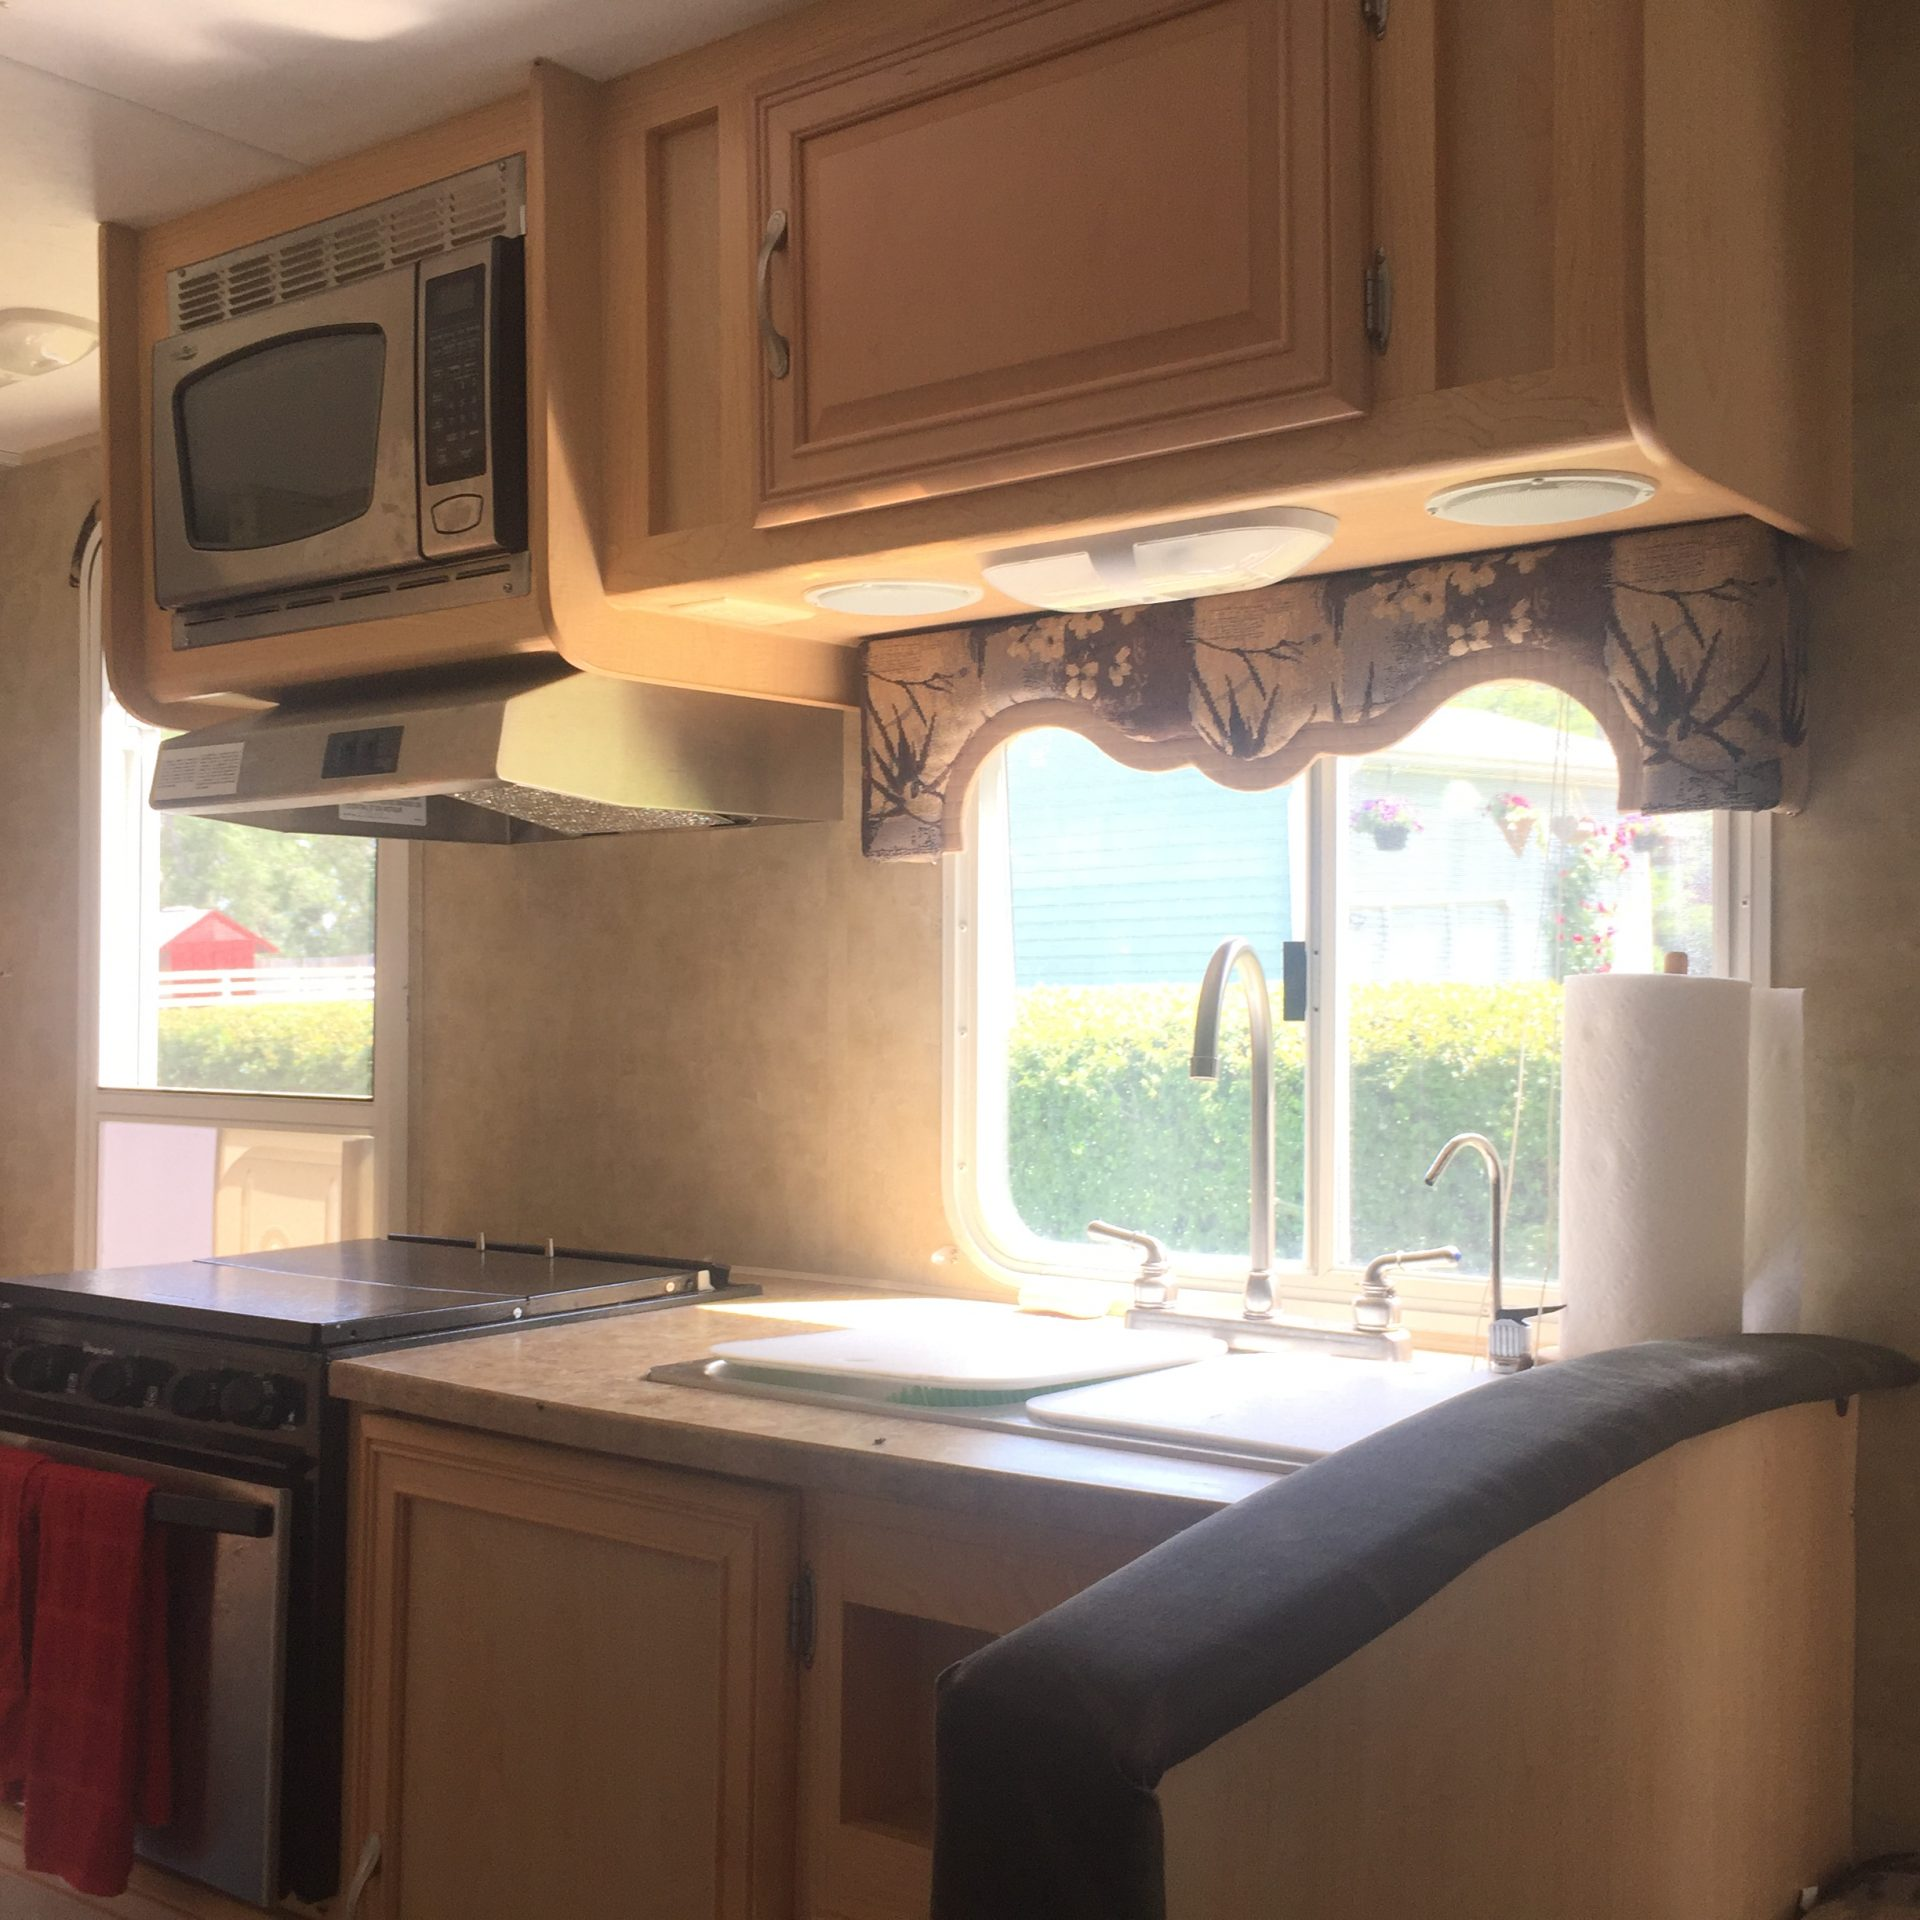 before the camper remodel the kitchen